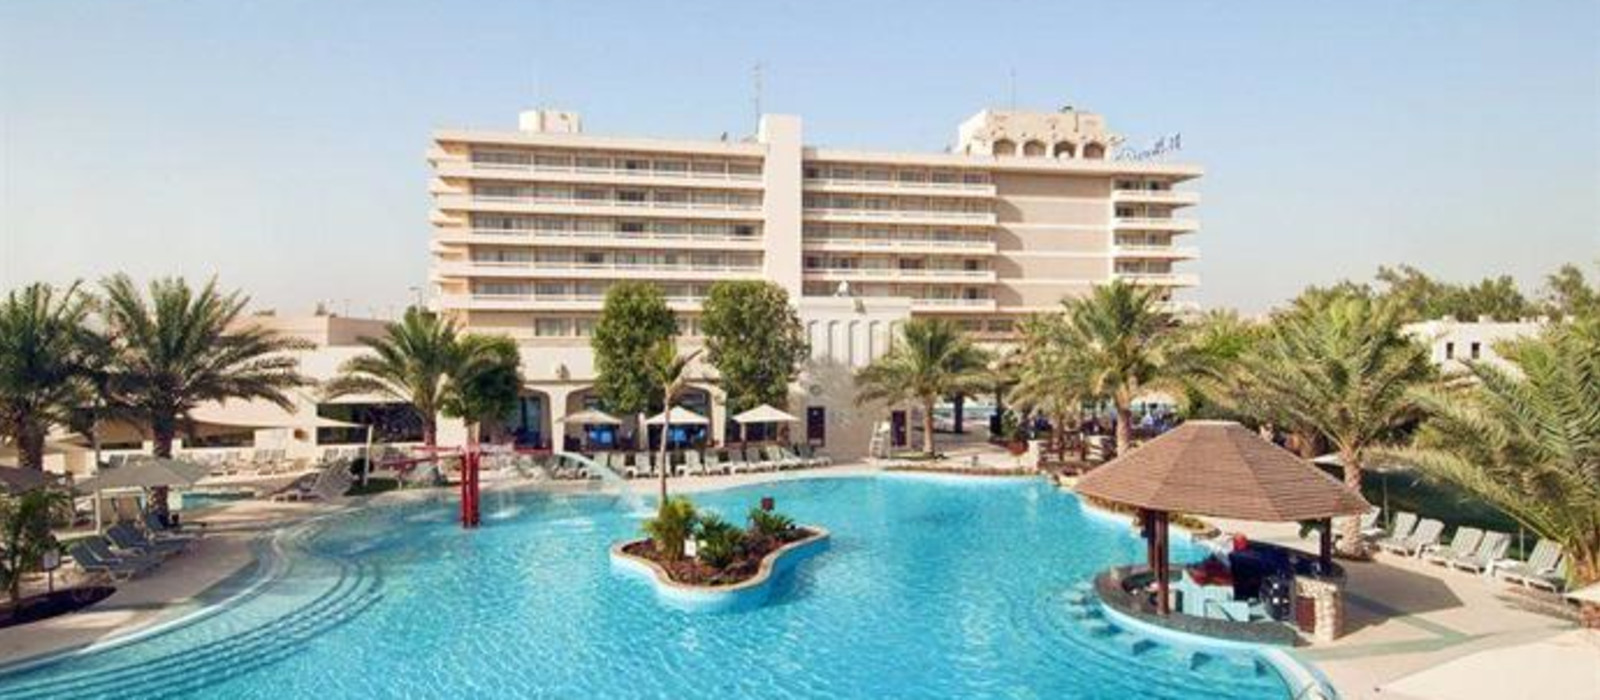 Hotel Radisson Blue  & Resort, Al Ain United Arab Emirates